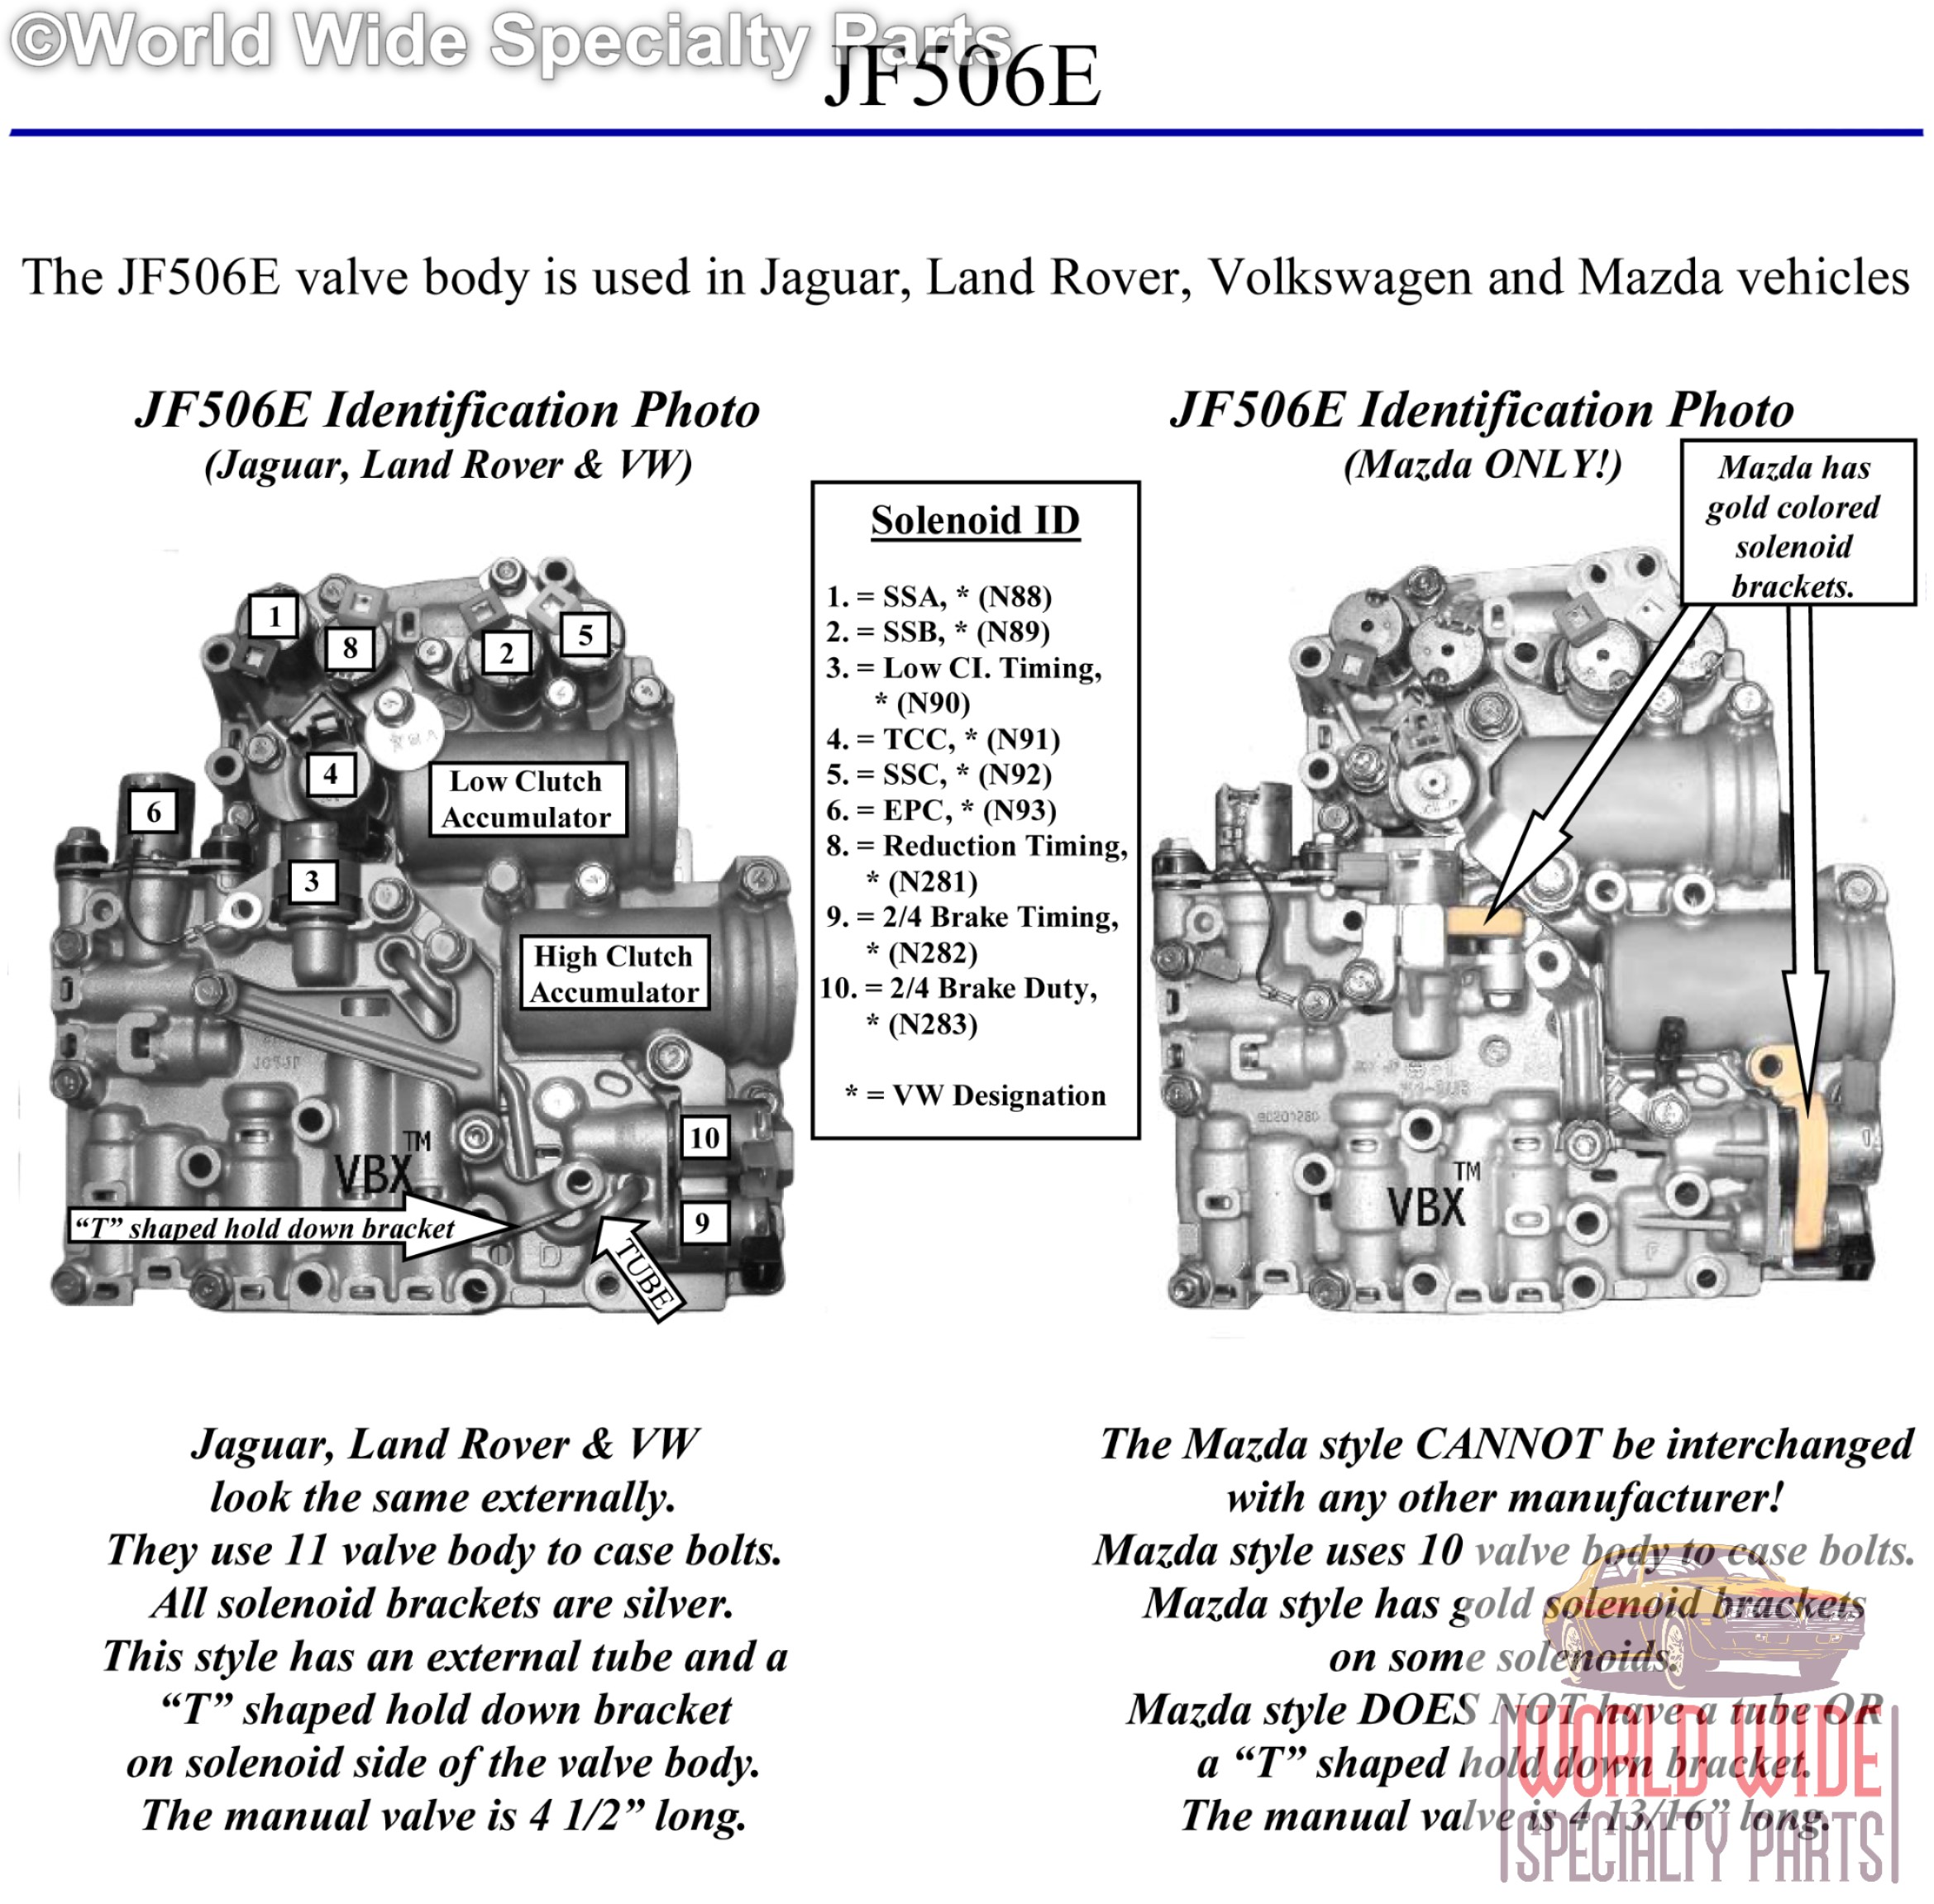 Jaguar Jf506e Valve Body 1999 Up Lifetime Warranty Sonnax Updated Difference Engine Diagram Tech Info Product Id